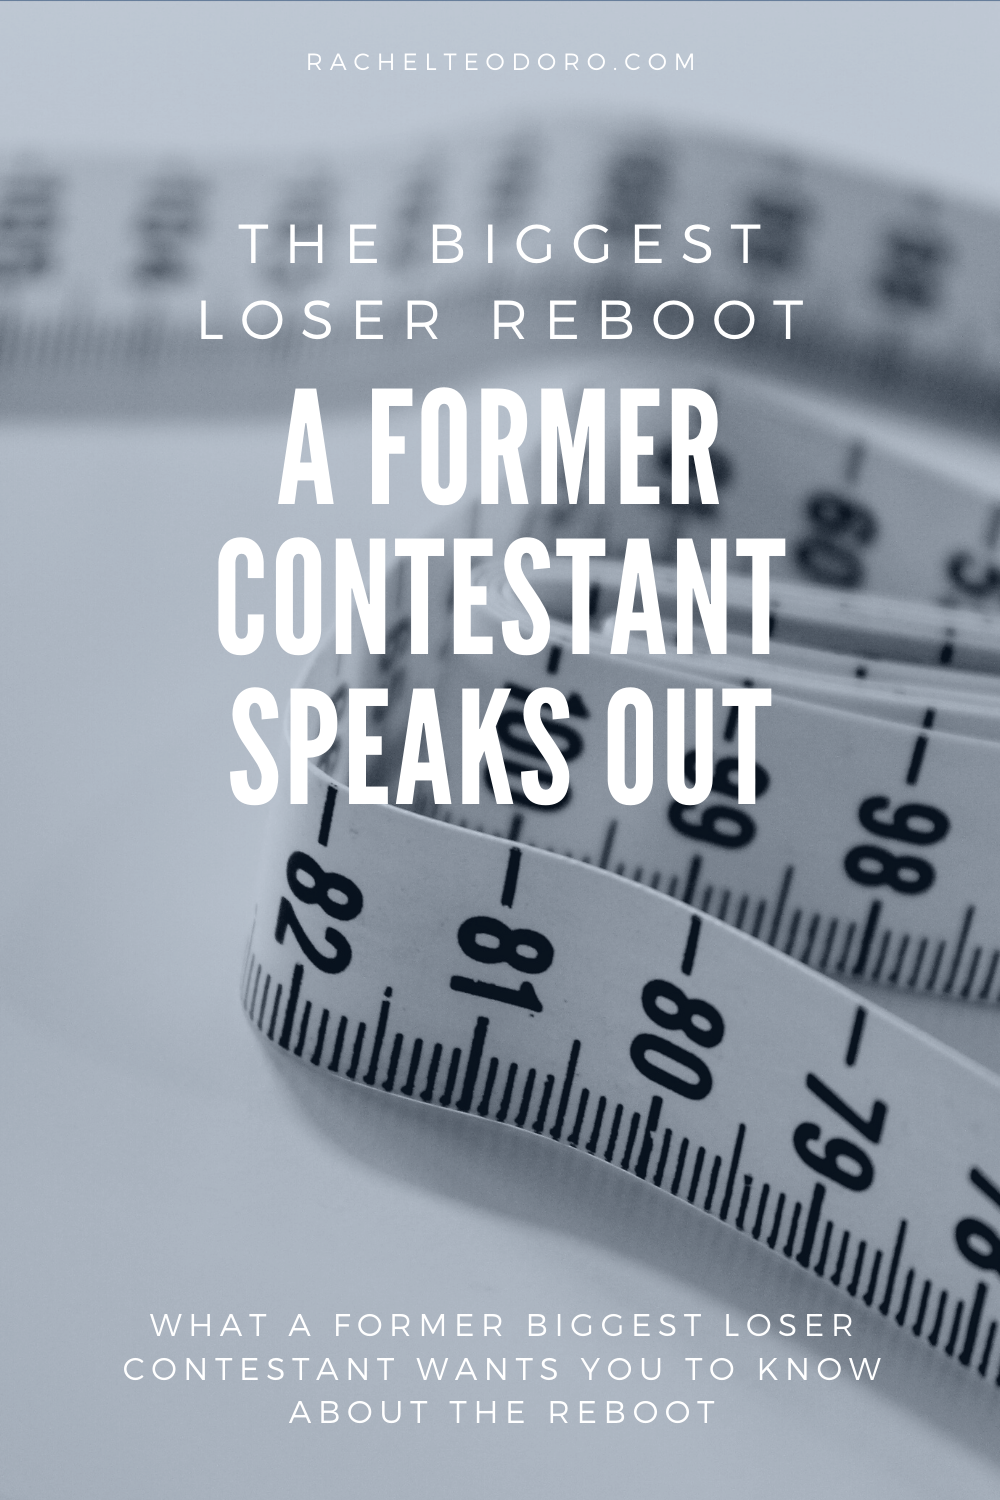 What a former biggest loser contestant wants you to know about the reboot